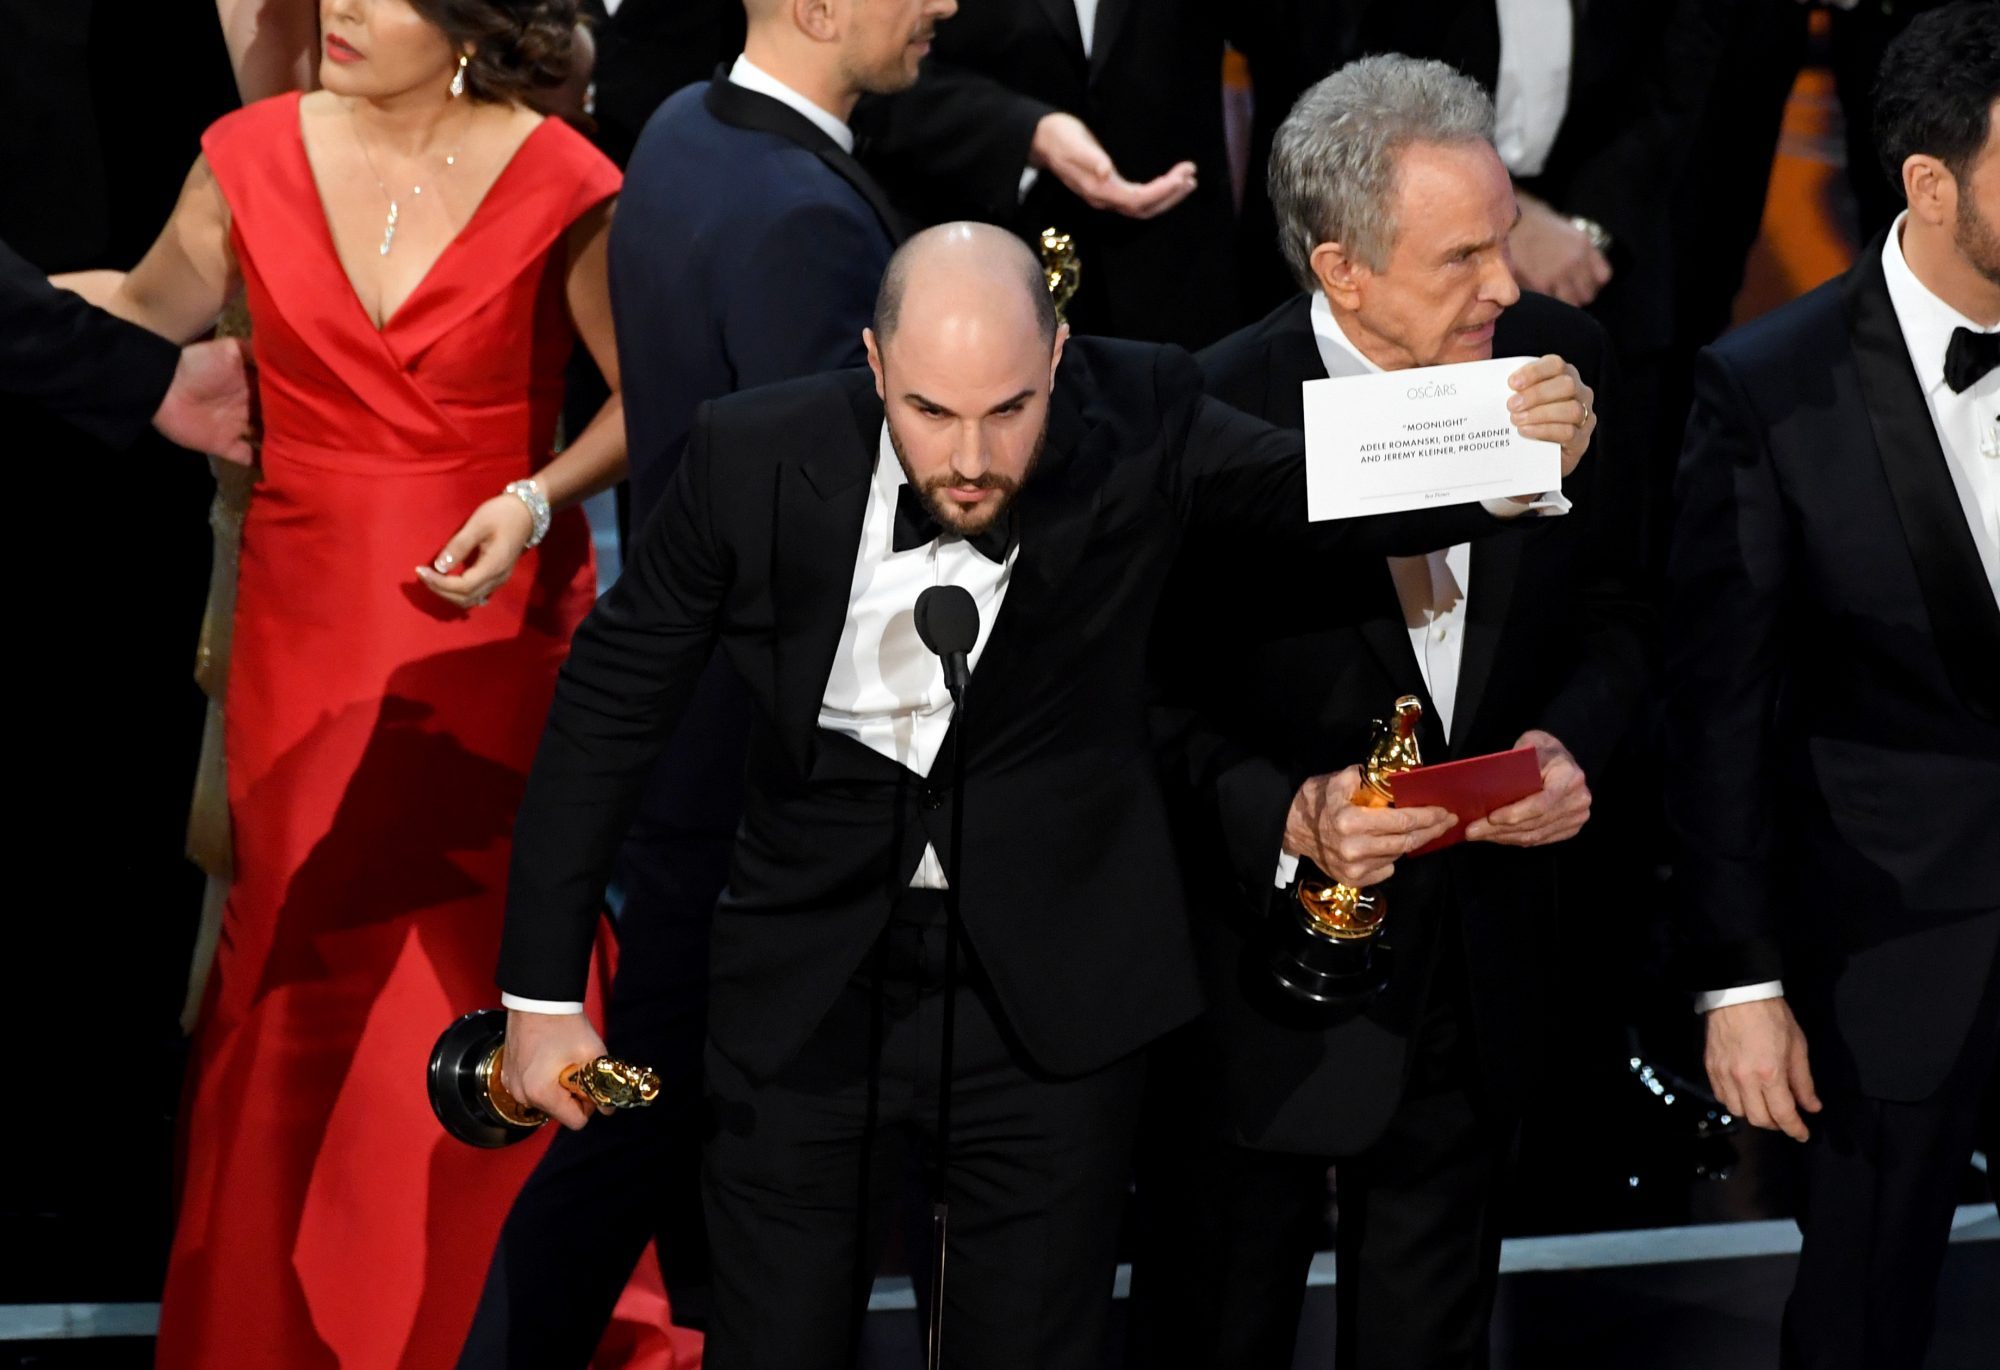 HOLLYWOOD, CA - FEBRUARY 26: 'La La Land' producer Jordan Horowitz holds up the winner card reading actual Best Picture winner 'Moonlight' with actor Warren Beatty onstage during the 89th Annual Academy Awards at Hollywood & Highland Center on February 26, 2017 in Hollywood, California. (Photo by Kevin Winter/Getty Images)